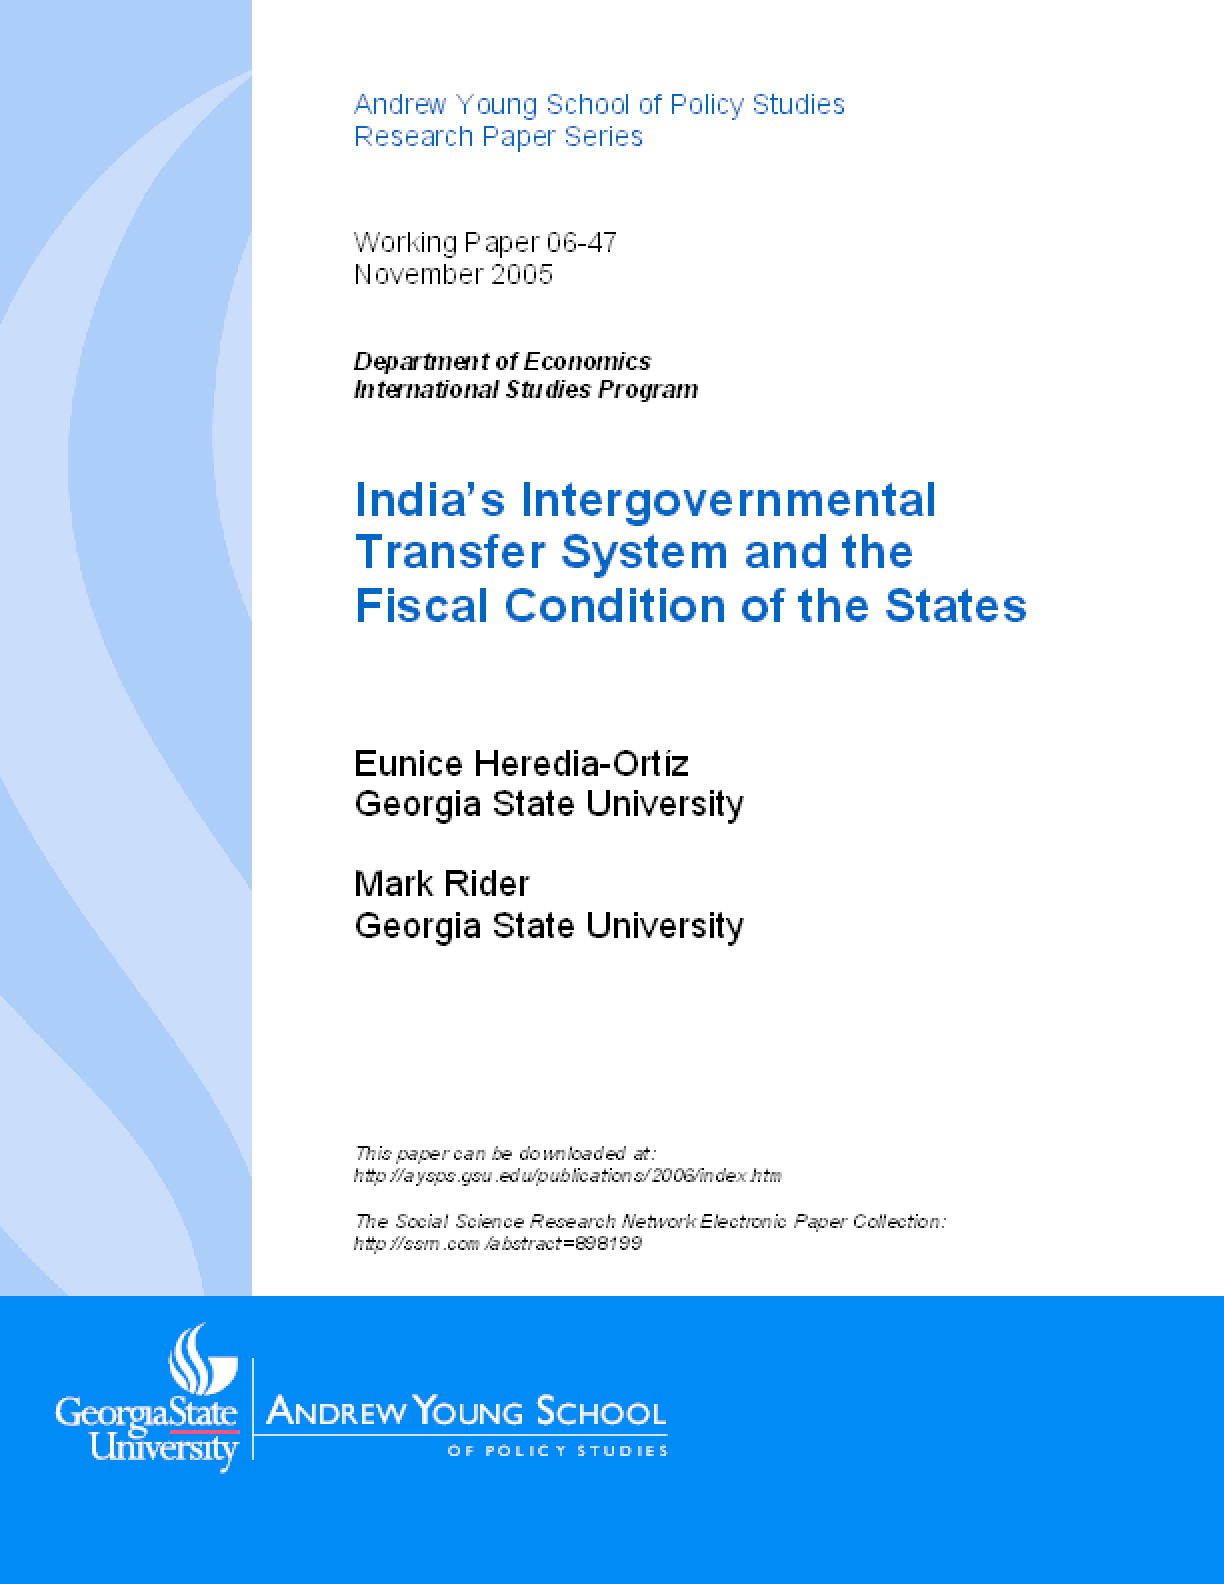 India's Intergovernmental Transfer System and the Fiscal Condition of the States